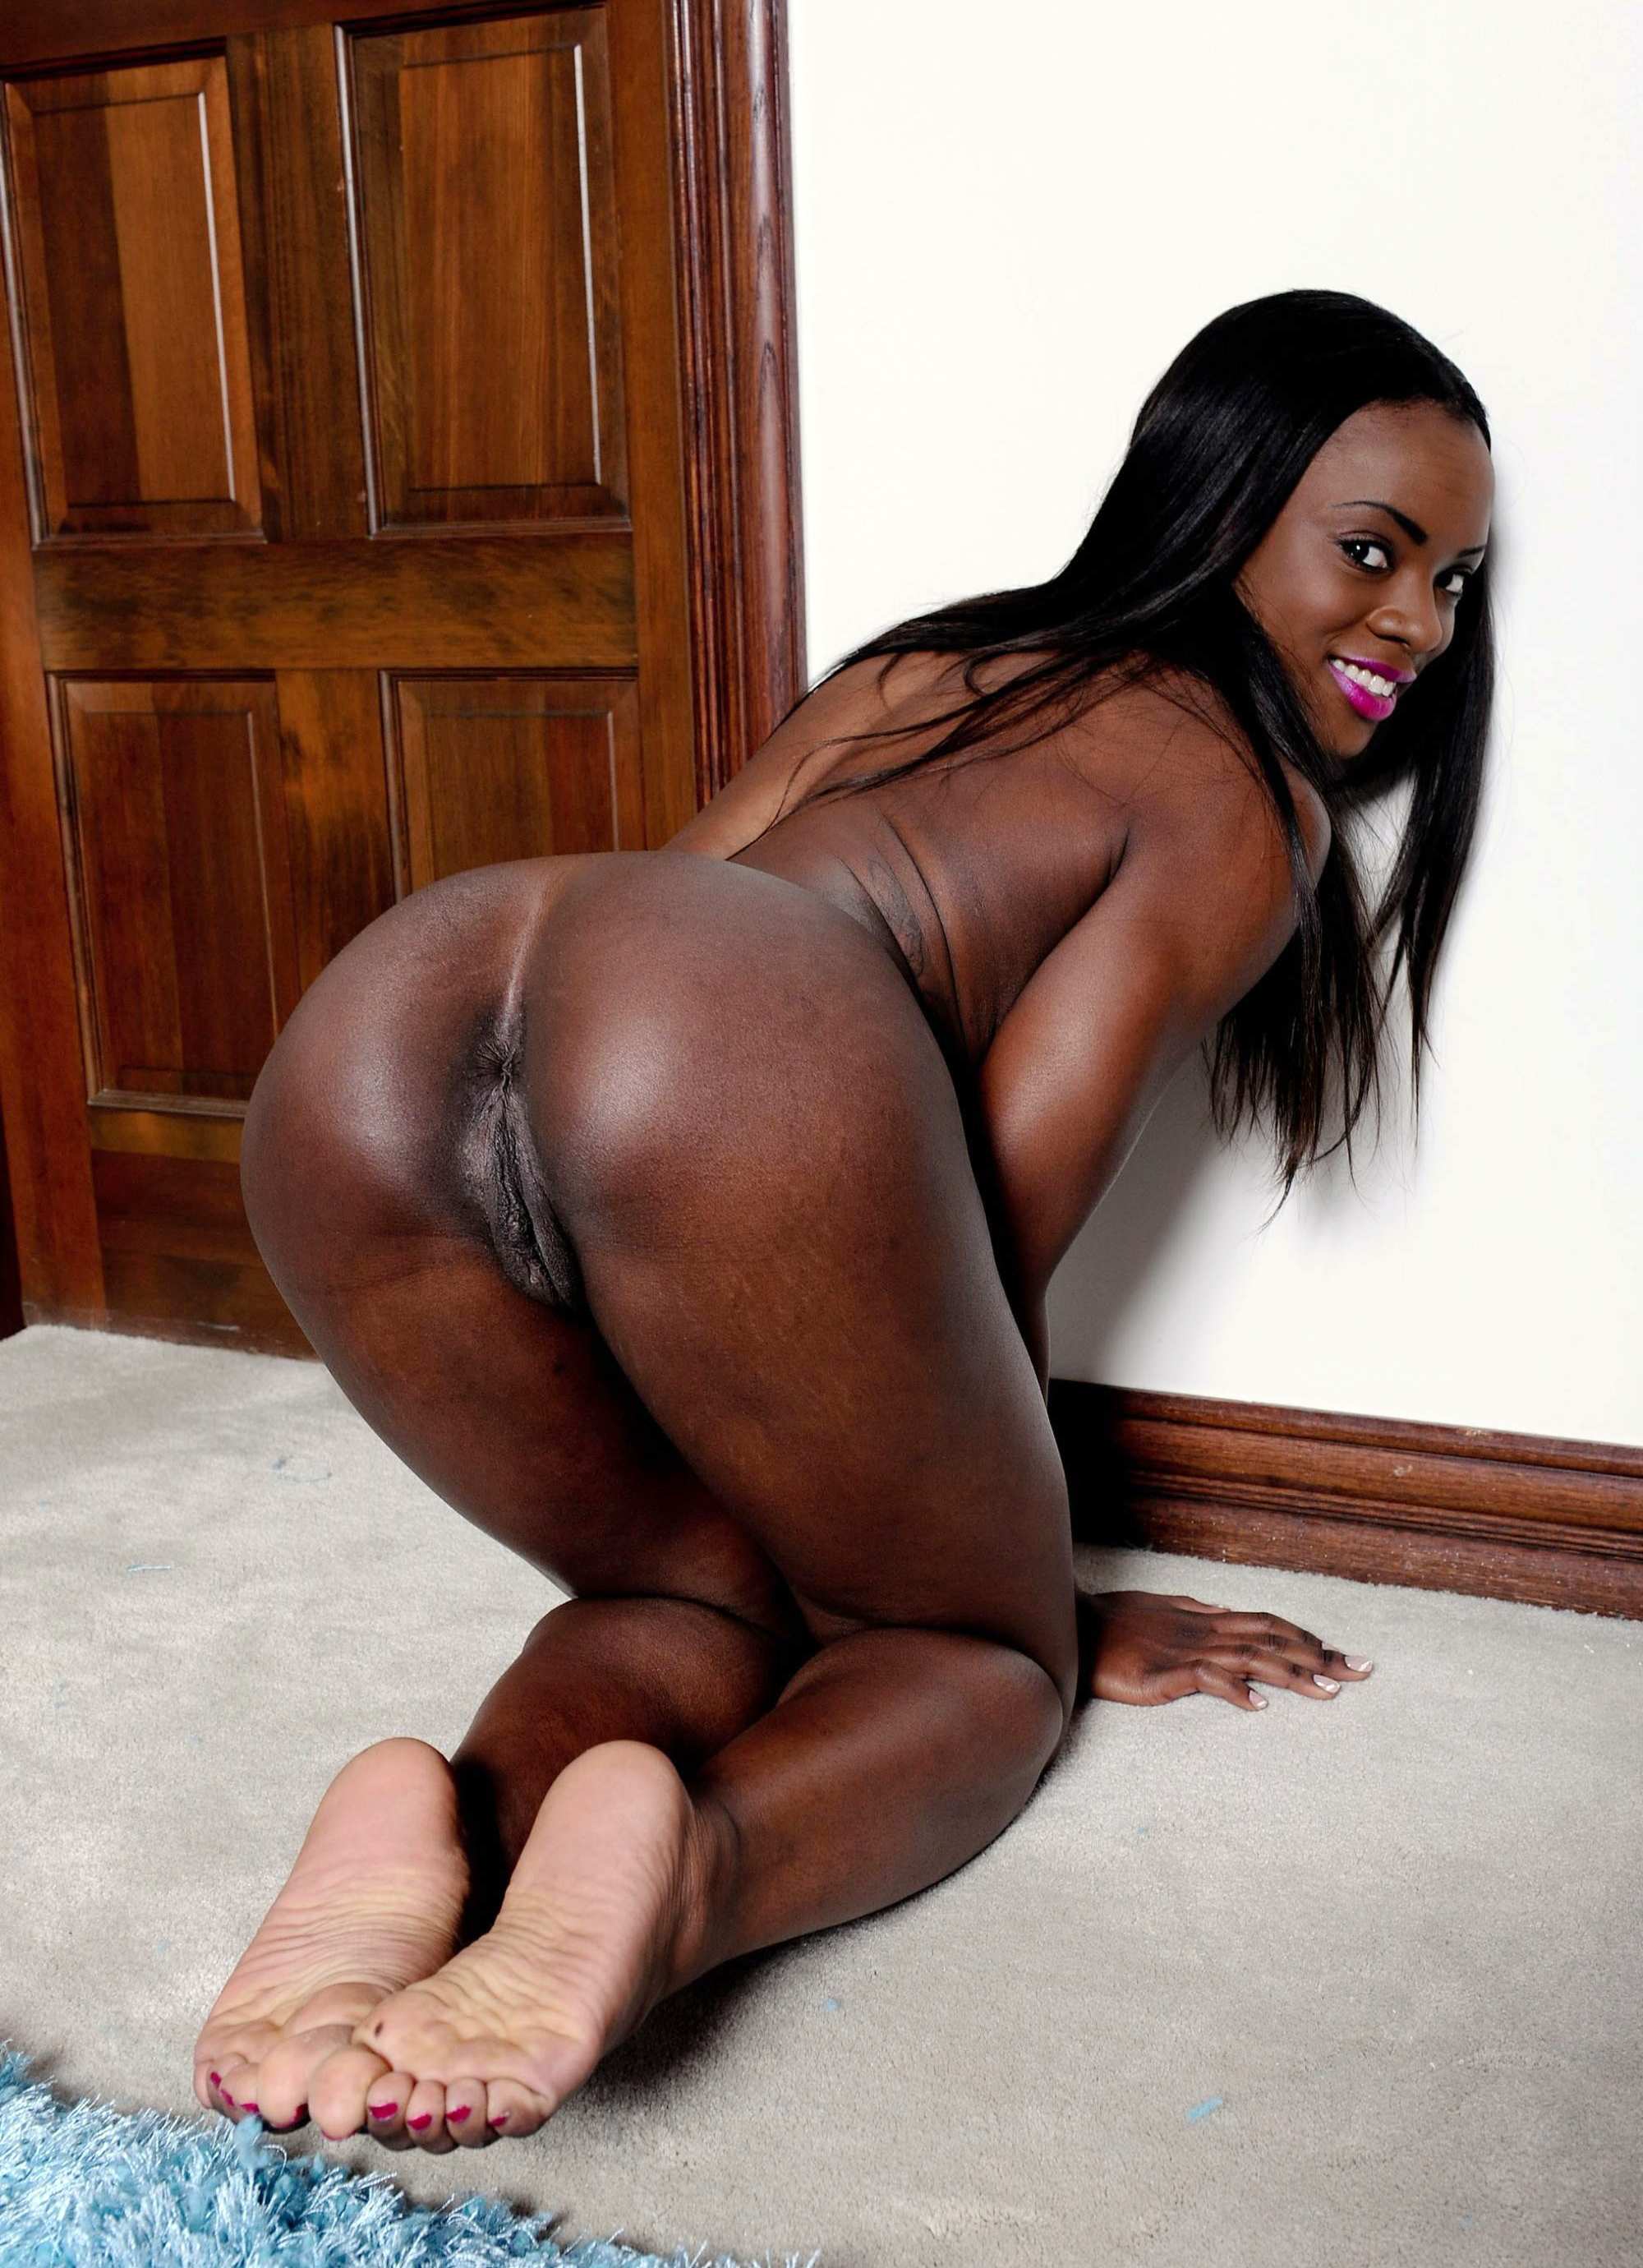 Big black chick sucks and fucks hard black dong on sofa